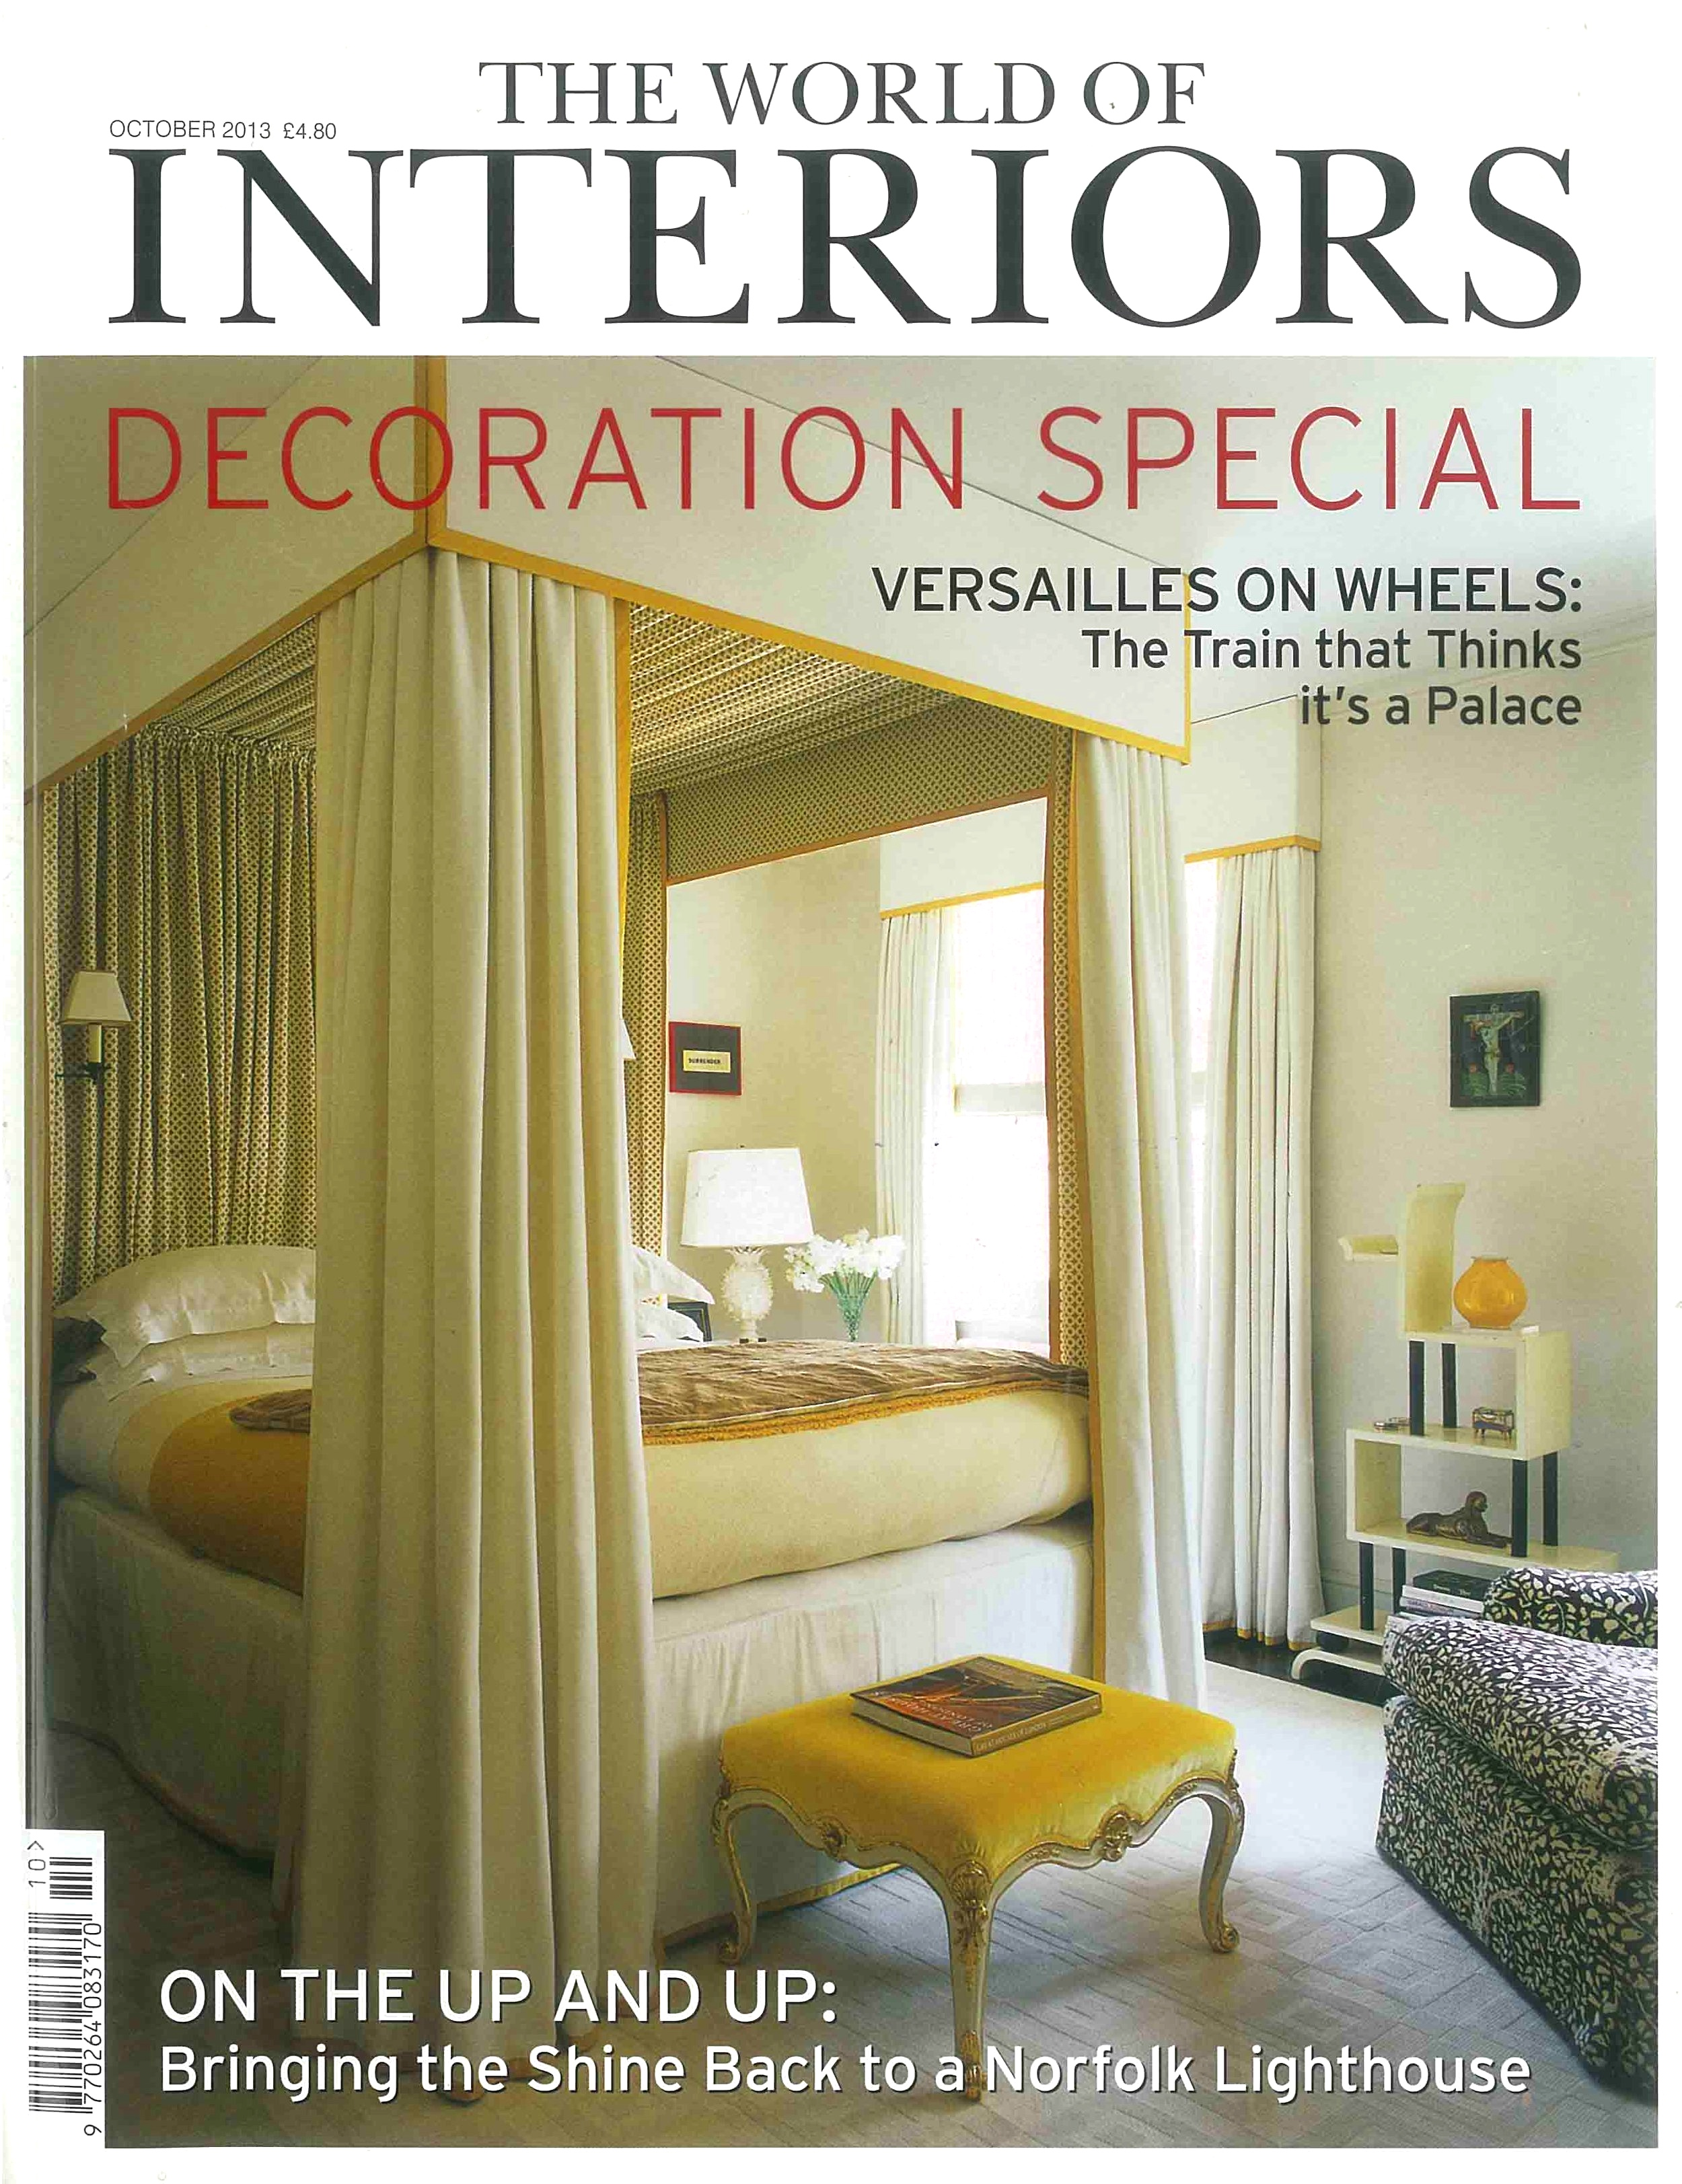 The World of Interiors, October 2013 - Carlos Place